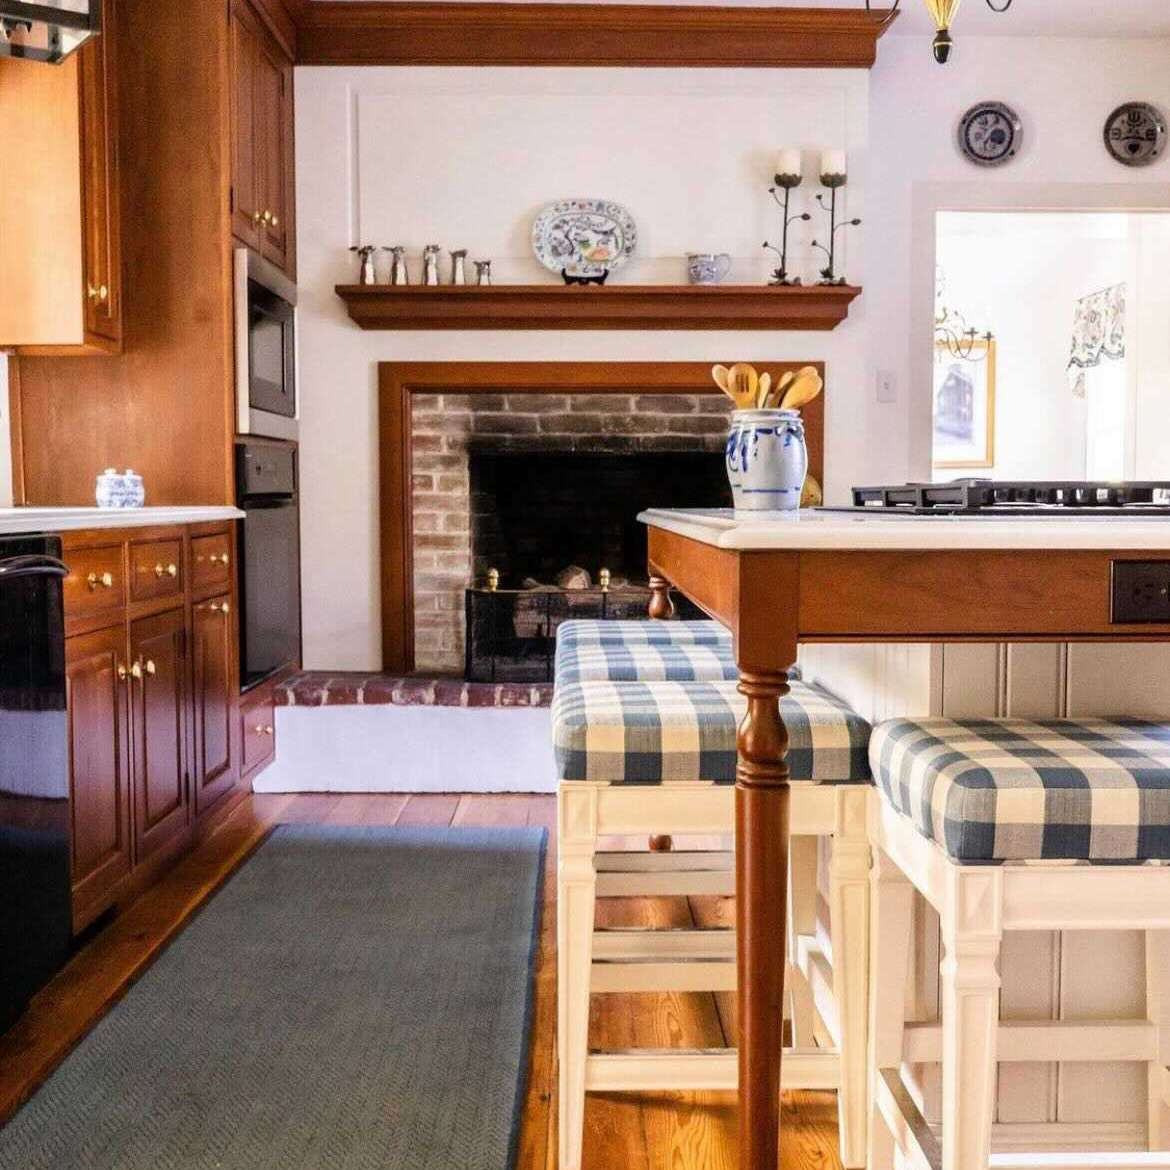 Traditional wood kitchen with blue gingham kitchen island stools